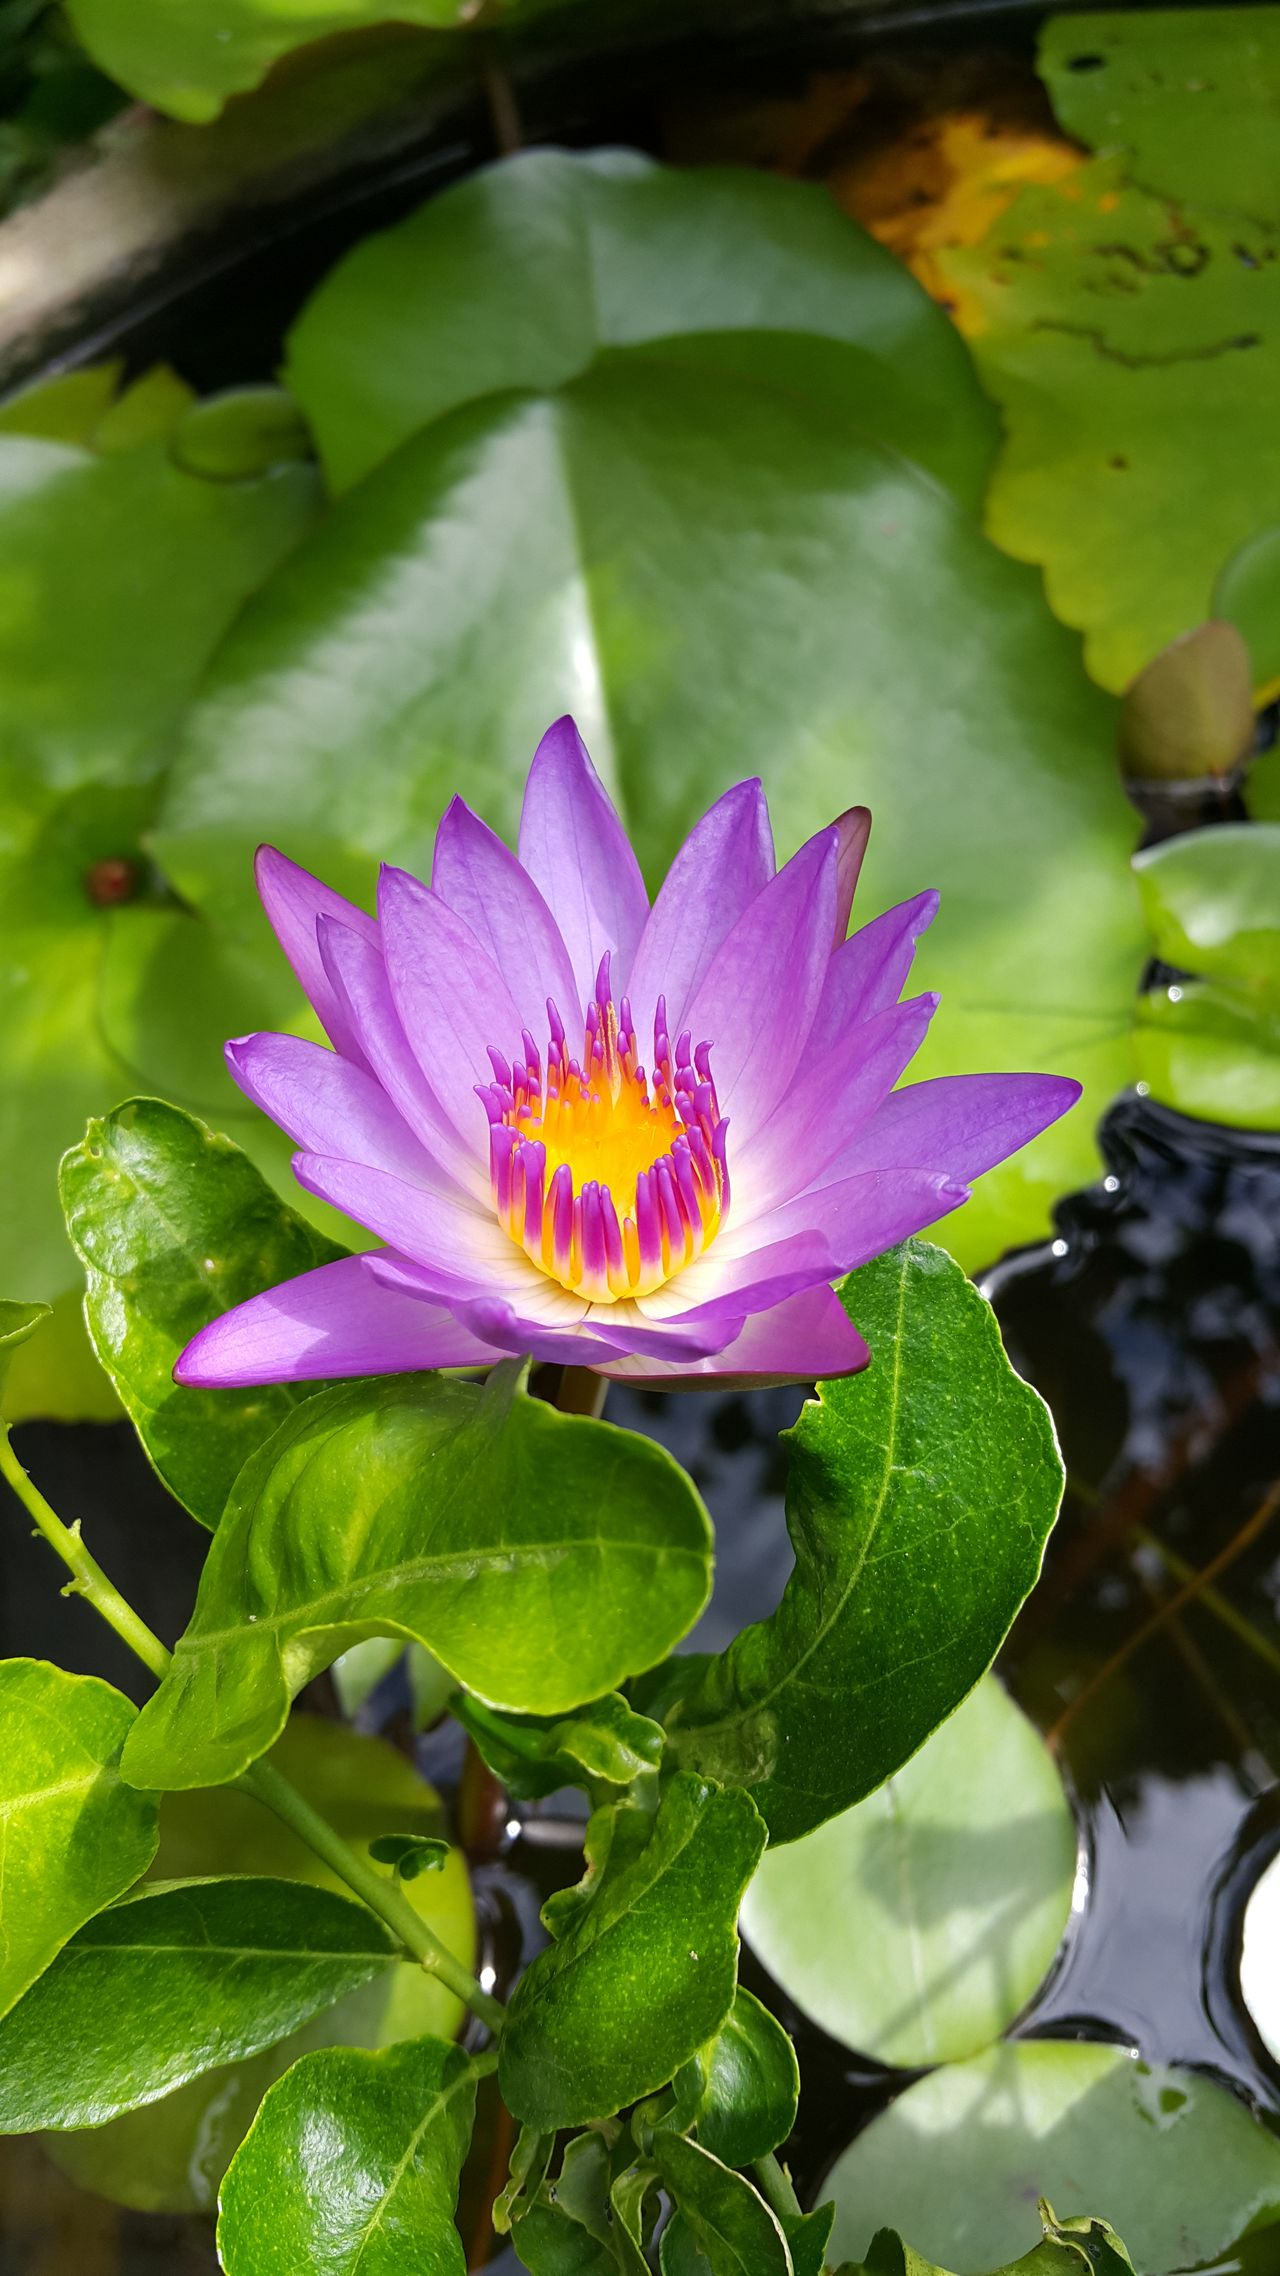 Lotus Lotus Flower Lotus Water Lily Purple Flower Purple Lotus Violet Flowers Violet Flower Lotuspond